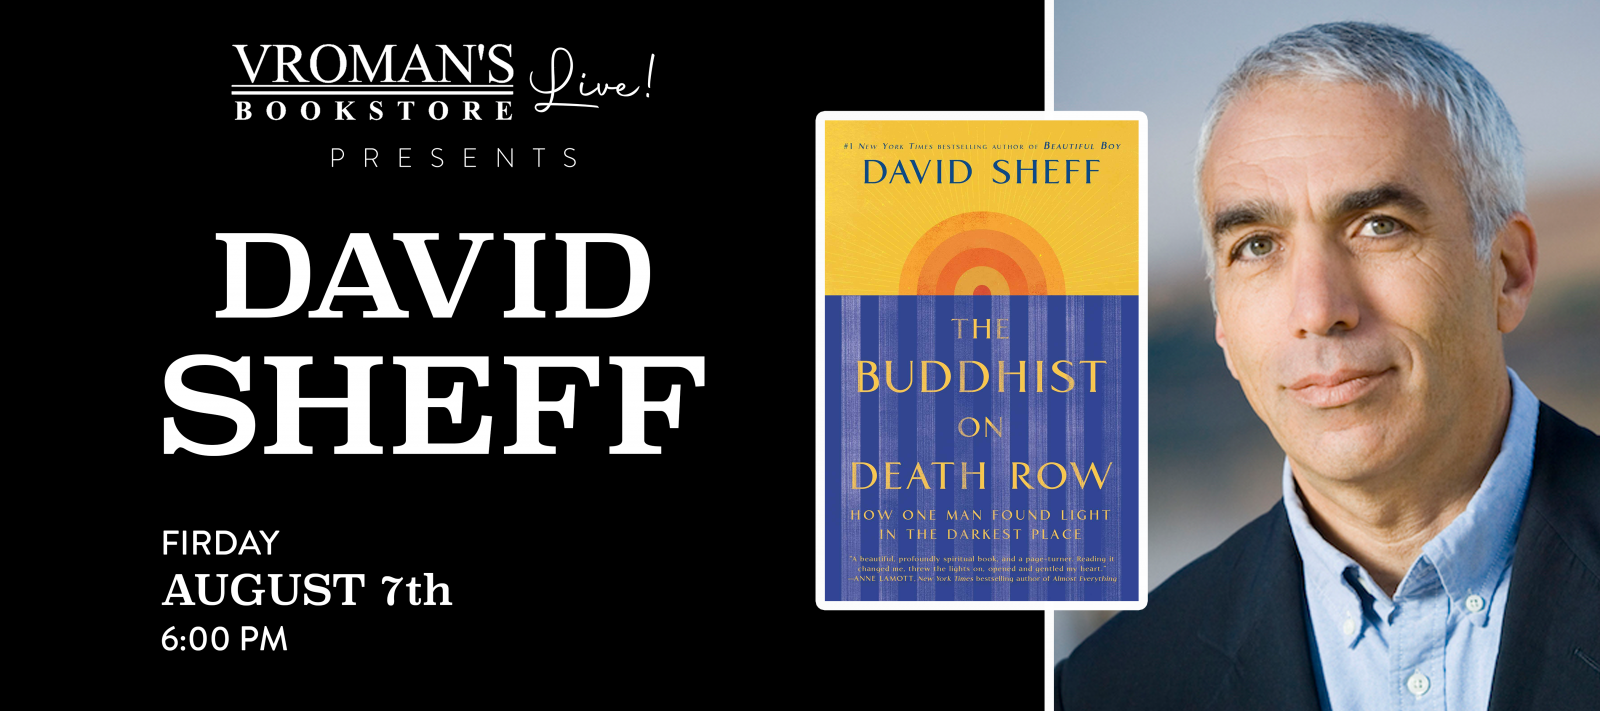 Vroman's Live presents David Sheff on Friday August 7th at 6pm